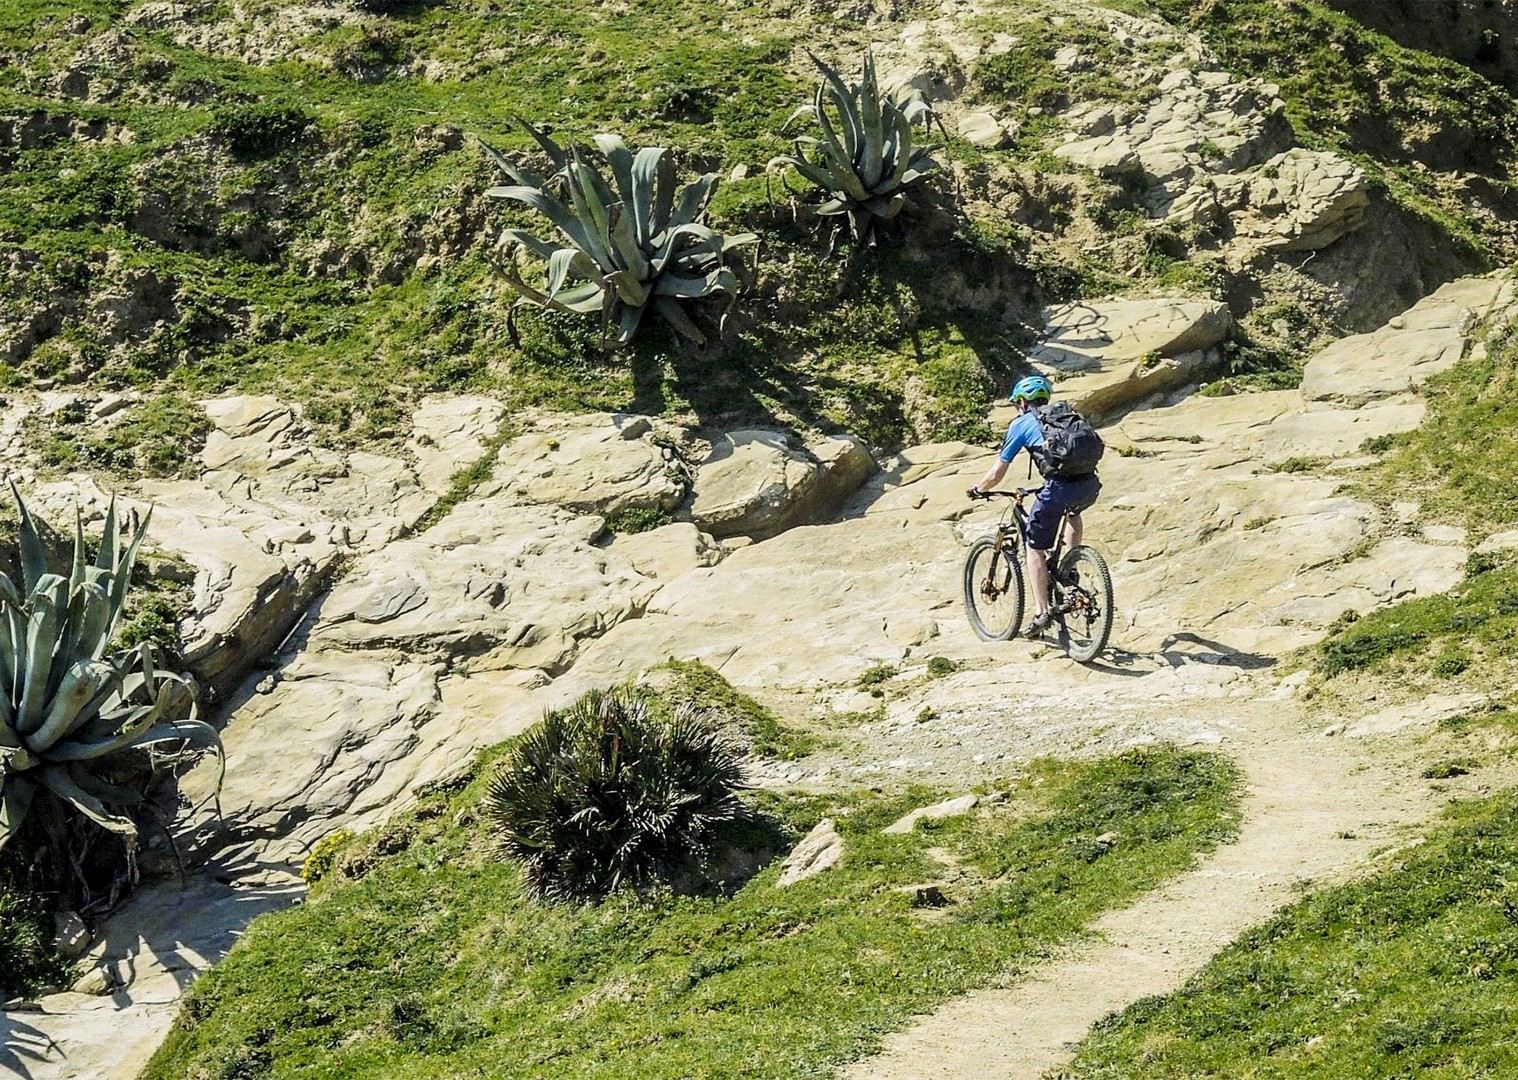 thrilling-mountain-biking-in-spain-el-chorro-with-saddle-skedaddle.jpg - Spain - Awesome Andalucia - Guided Mountain Bike Holiday - Mountain Biking